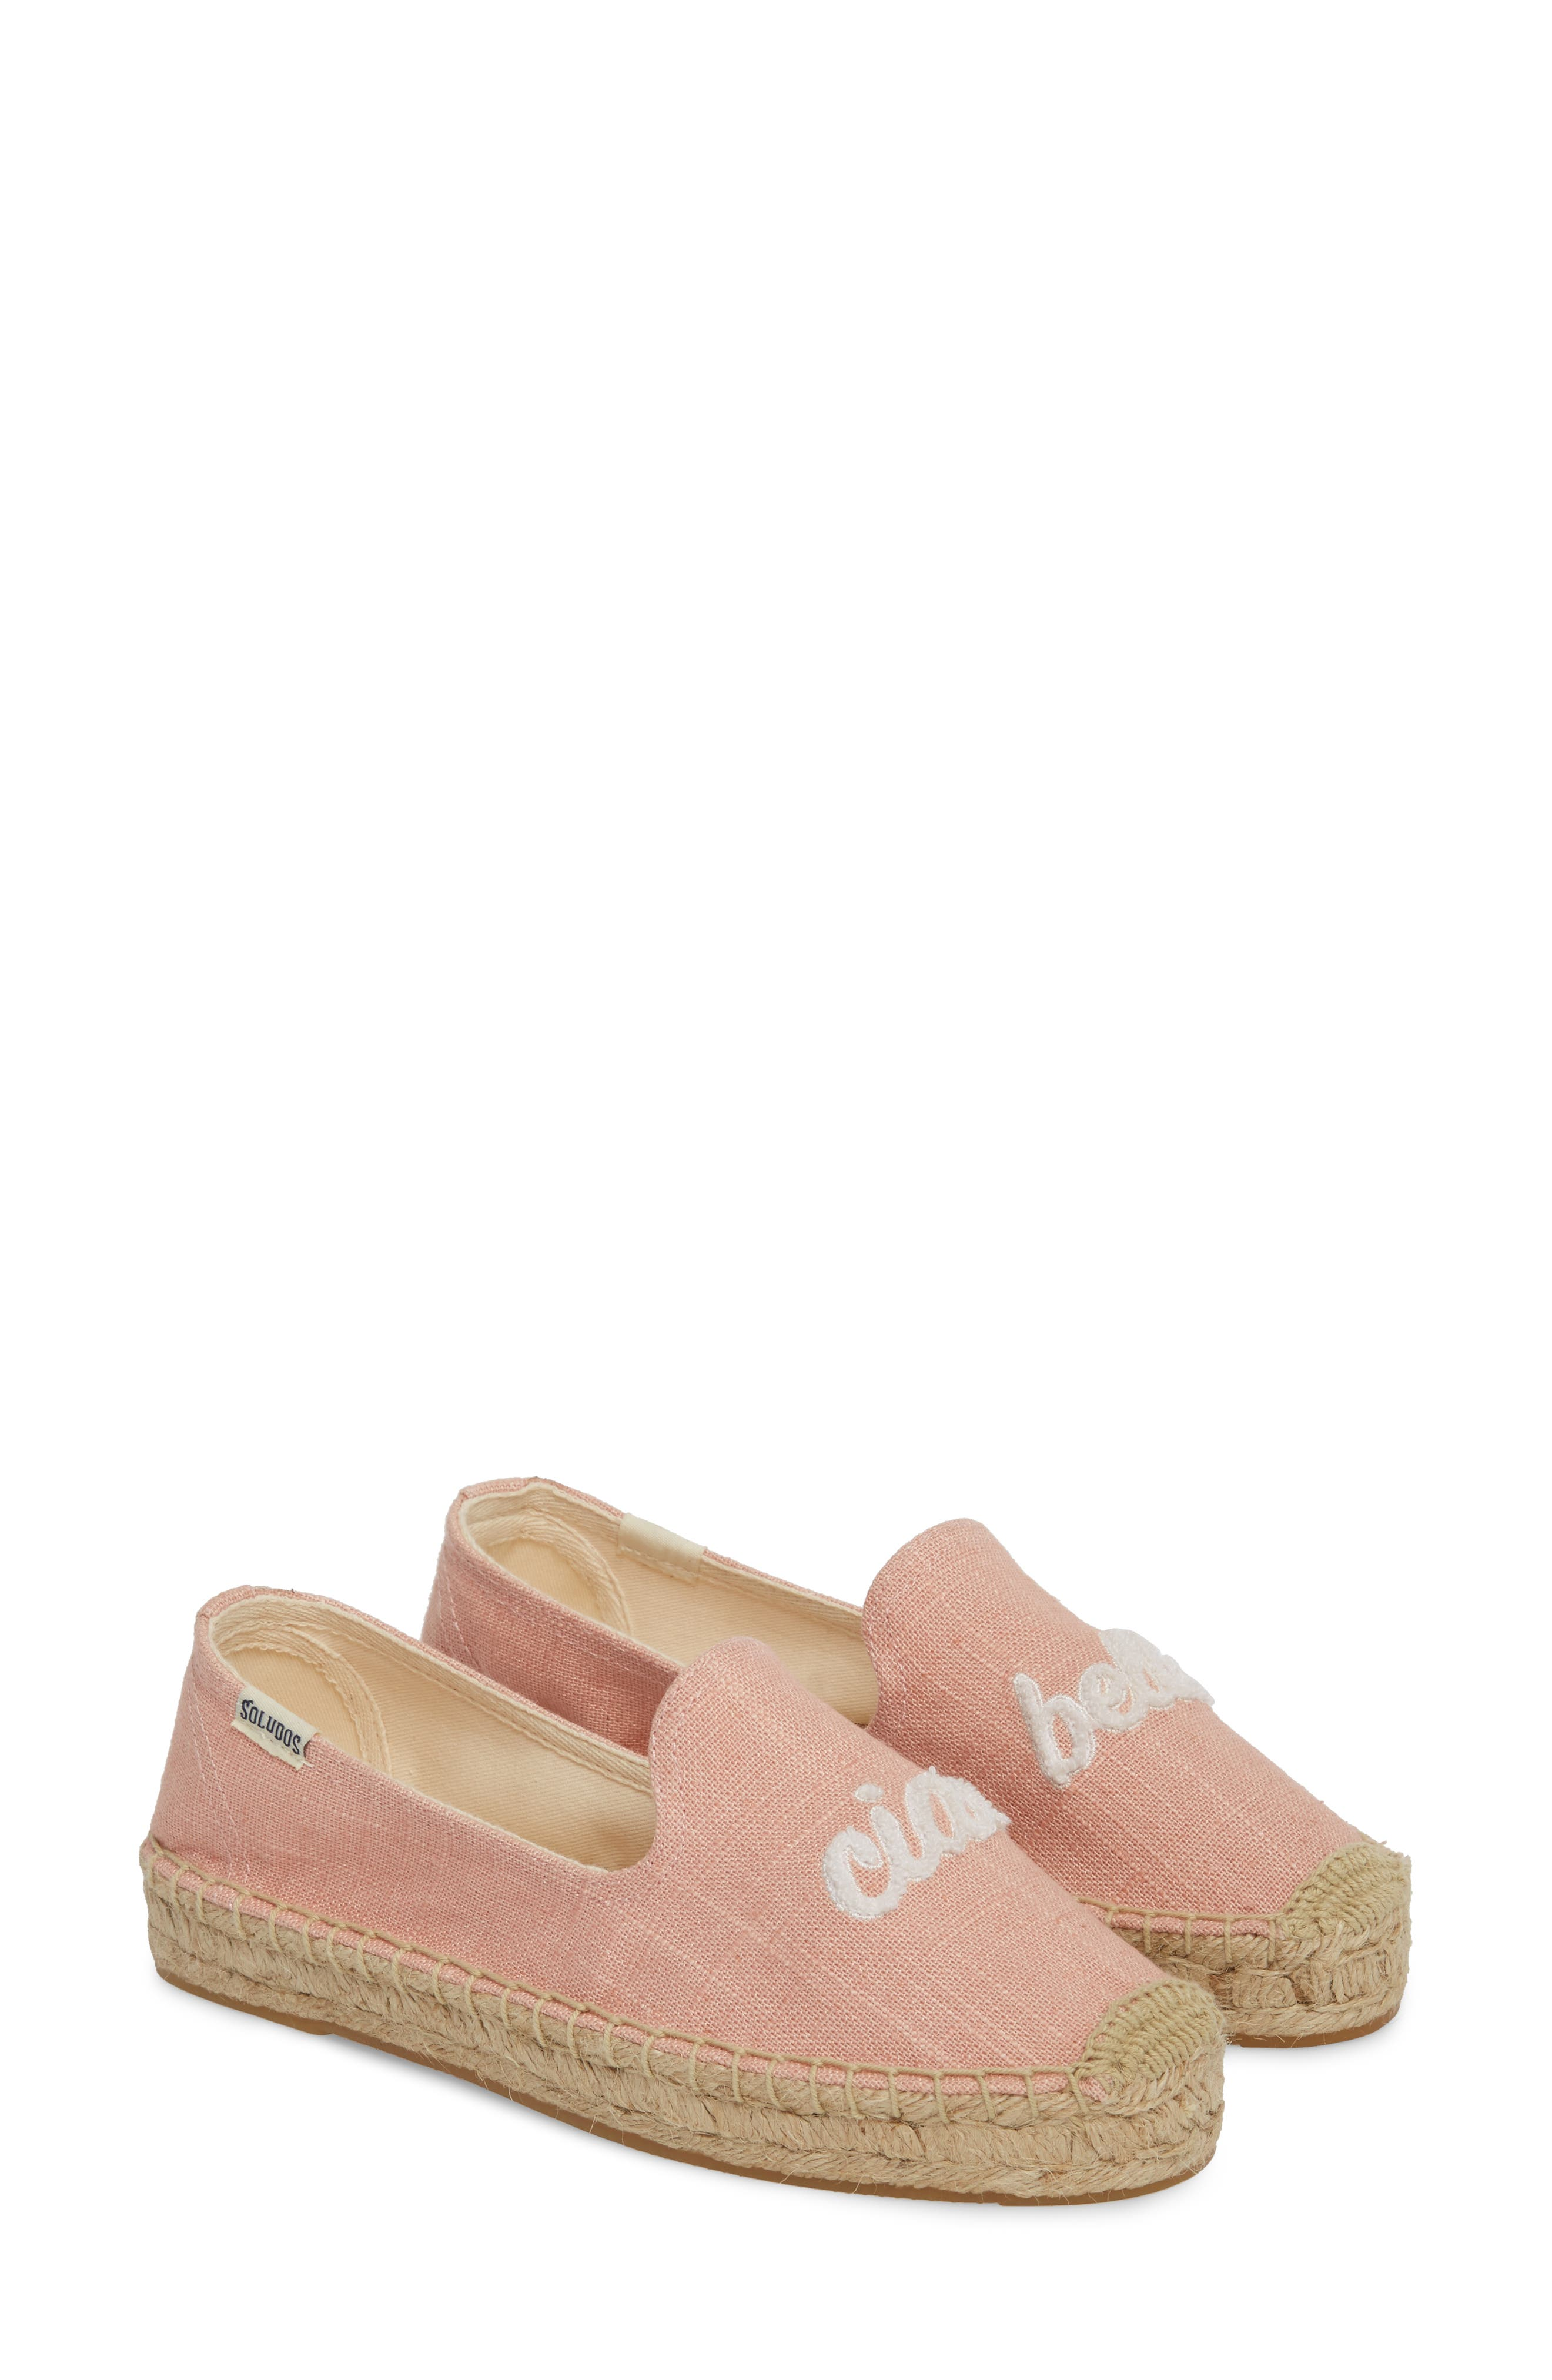 SOLUDOS, Ciao Bella Espadrille Flat, Alternate thumbnail 2, color, DUSTY ROSE FABRIC